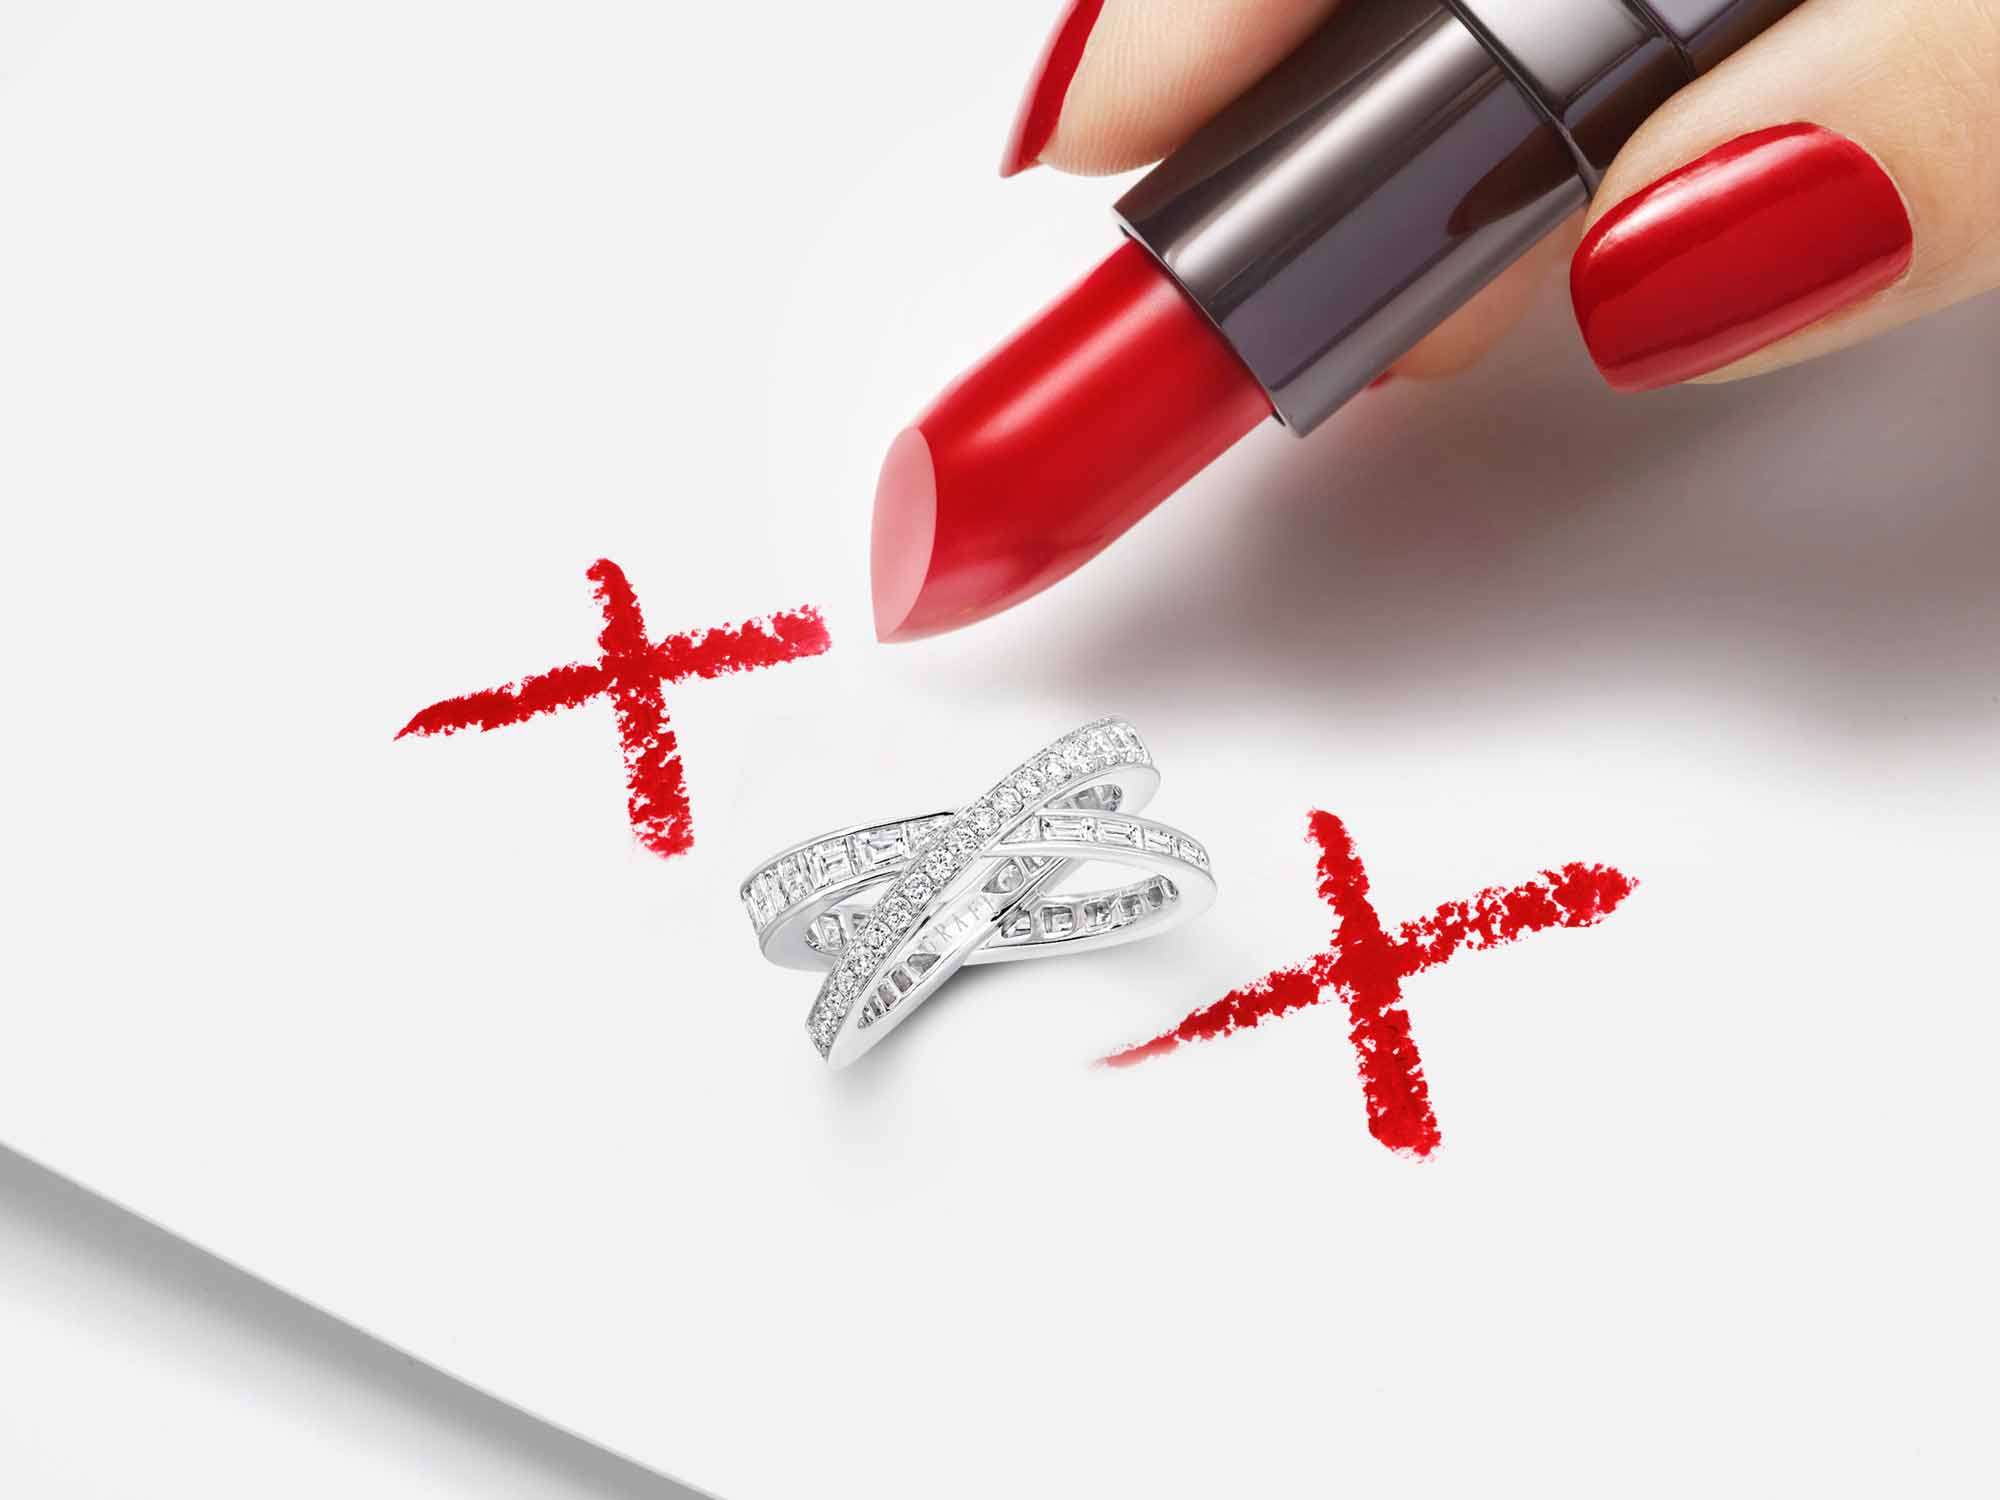 Model drawing kiss symbols with red lipstick and a Kiss Pavé Baguette and round Diamond Ring  from the Graff Spiral Jewellery Collection in the middle